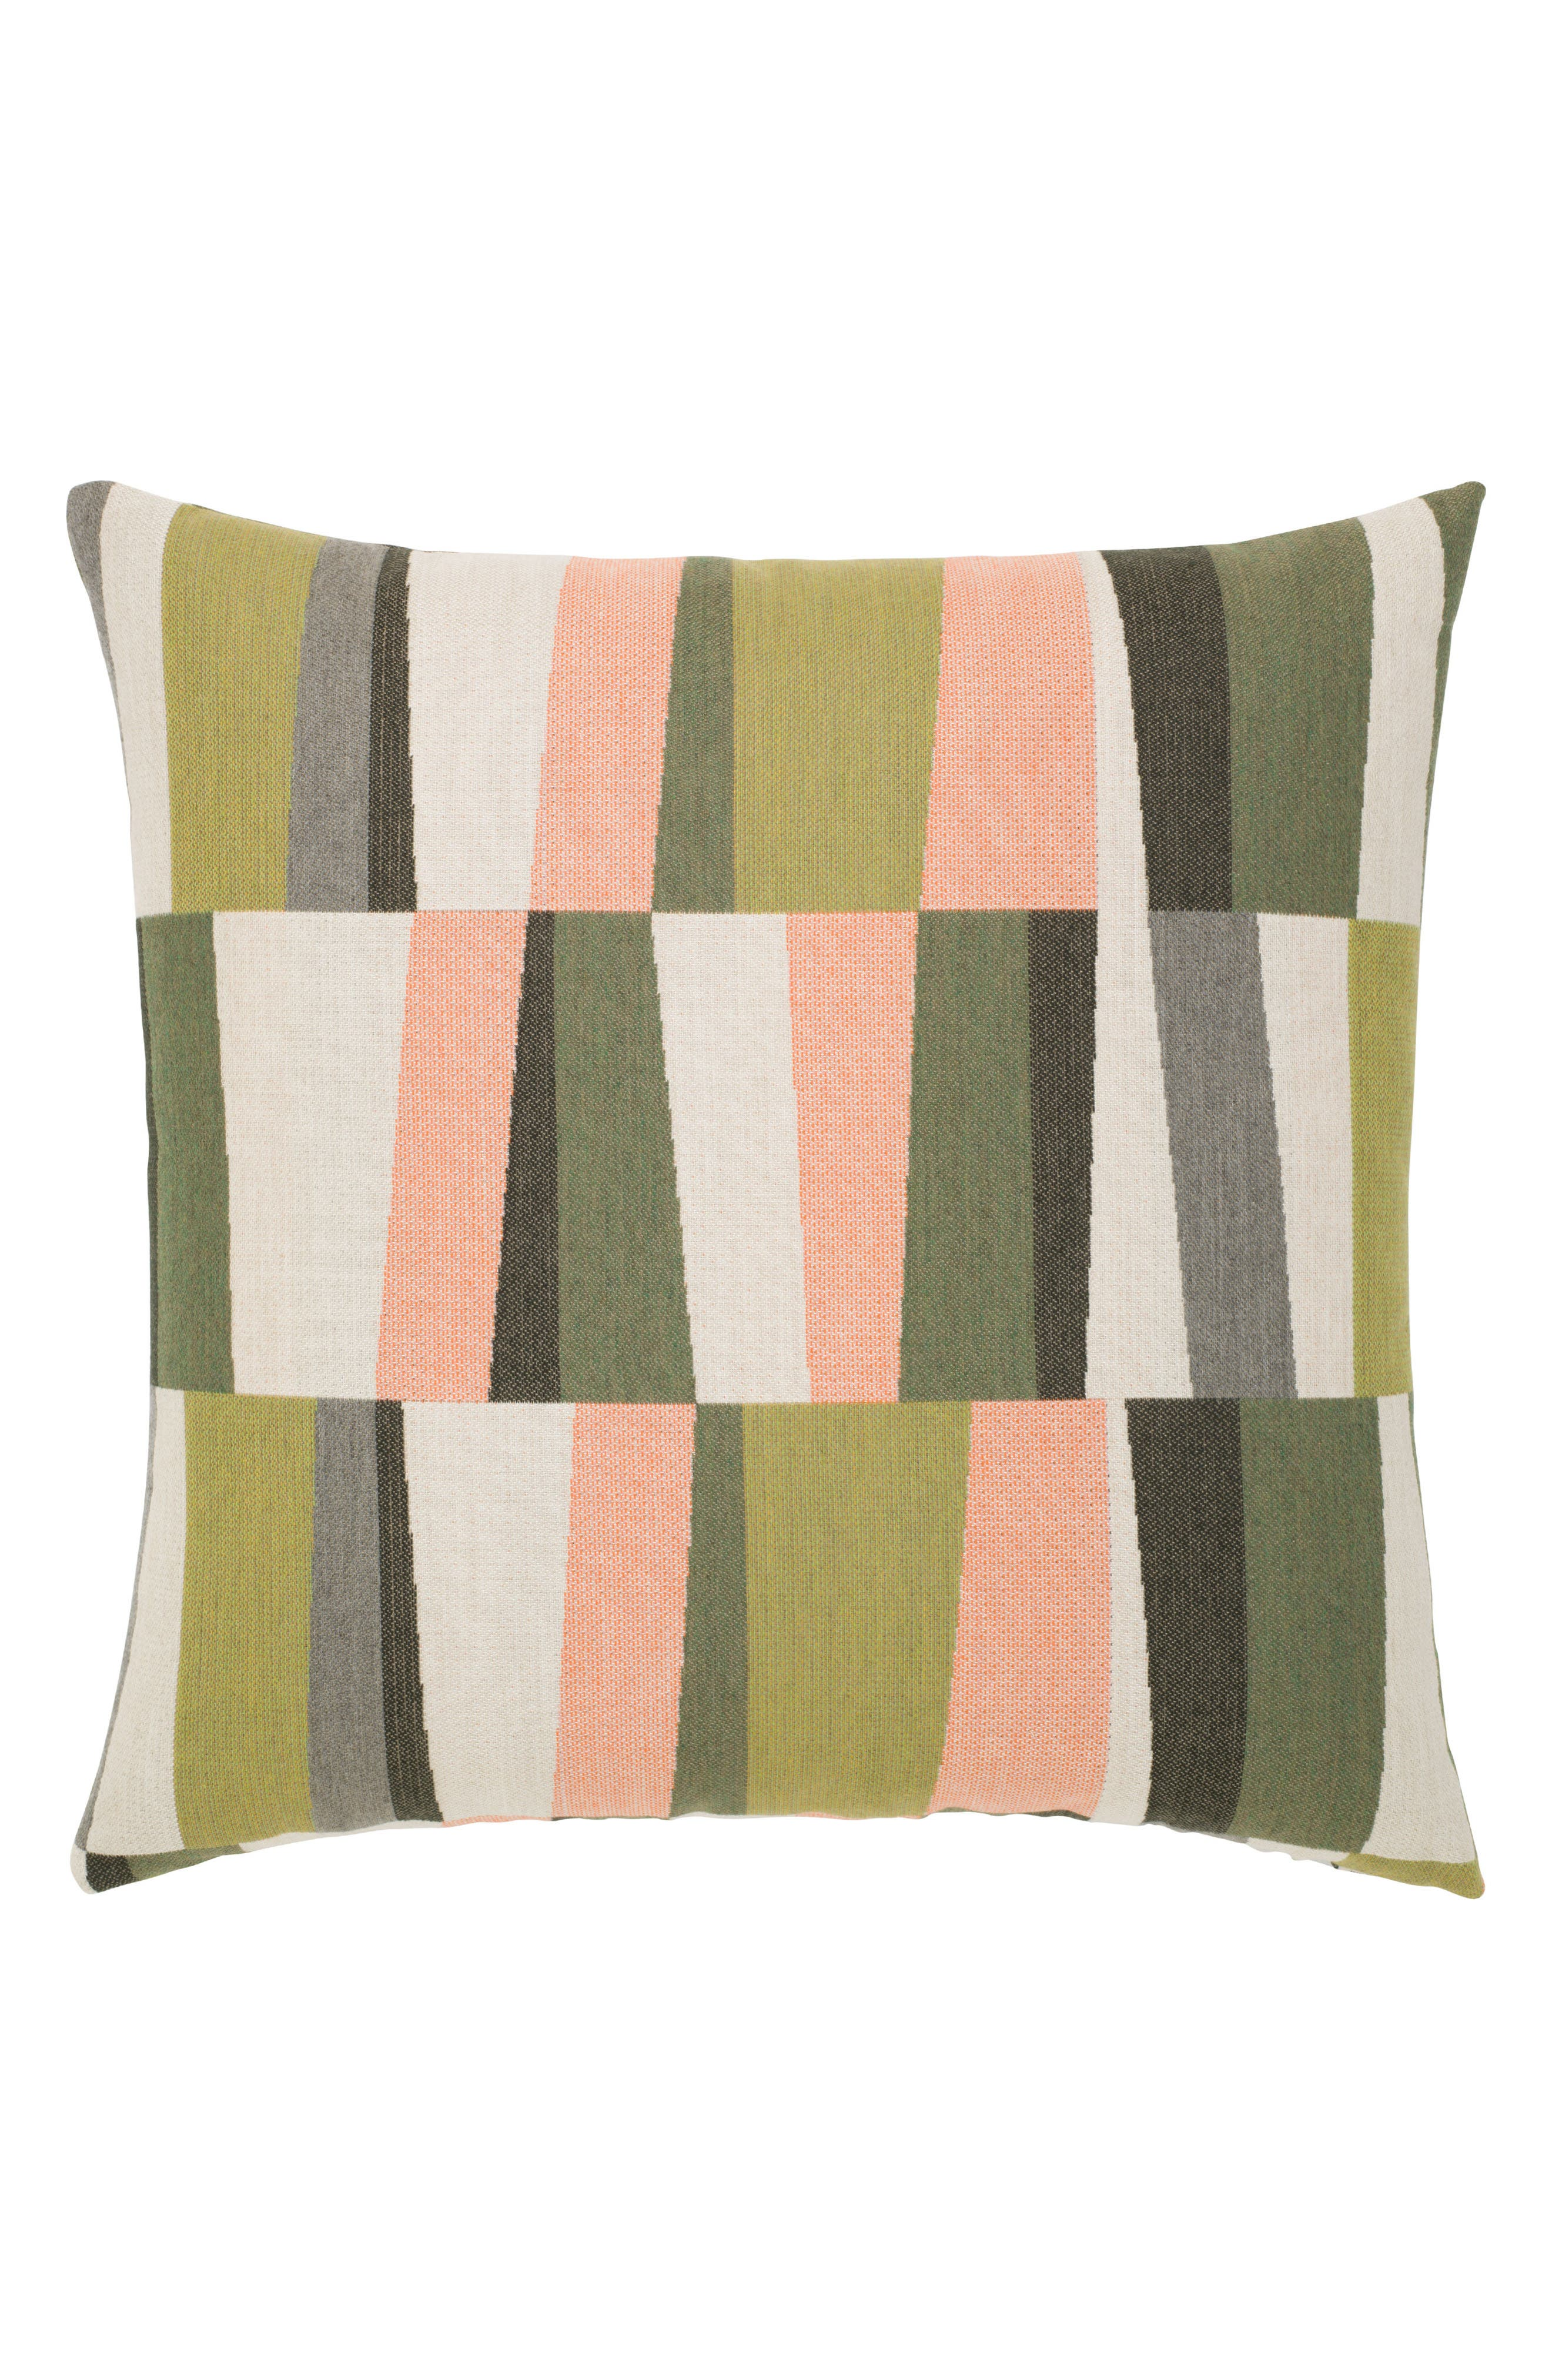 Strata Fern Indoor/Outdoor Accent Pillow,                         Main,                         color, Green Multi